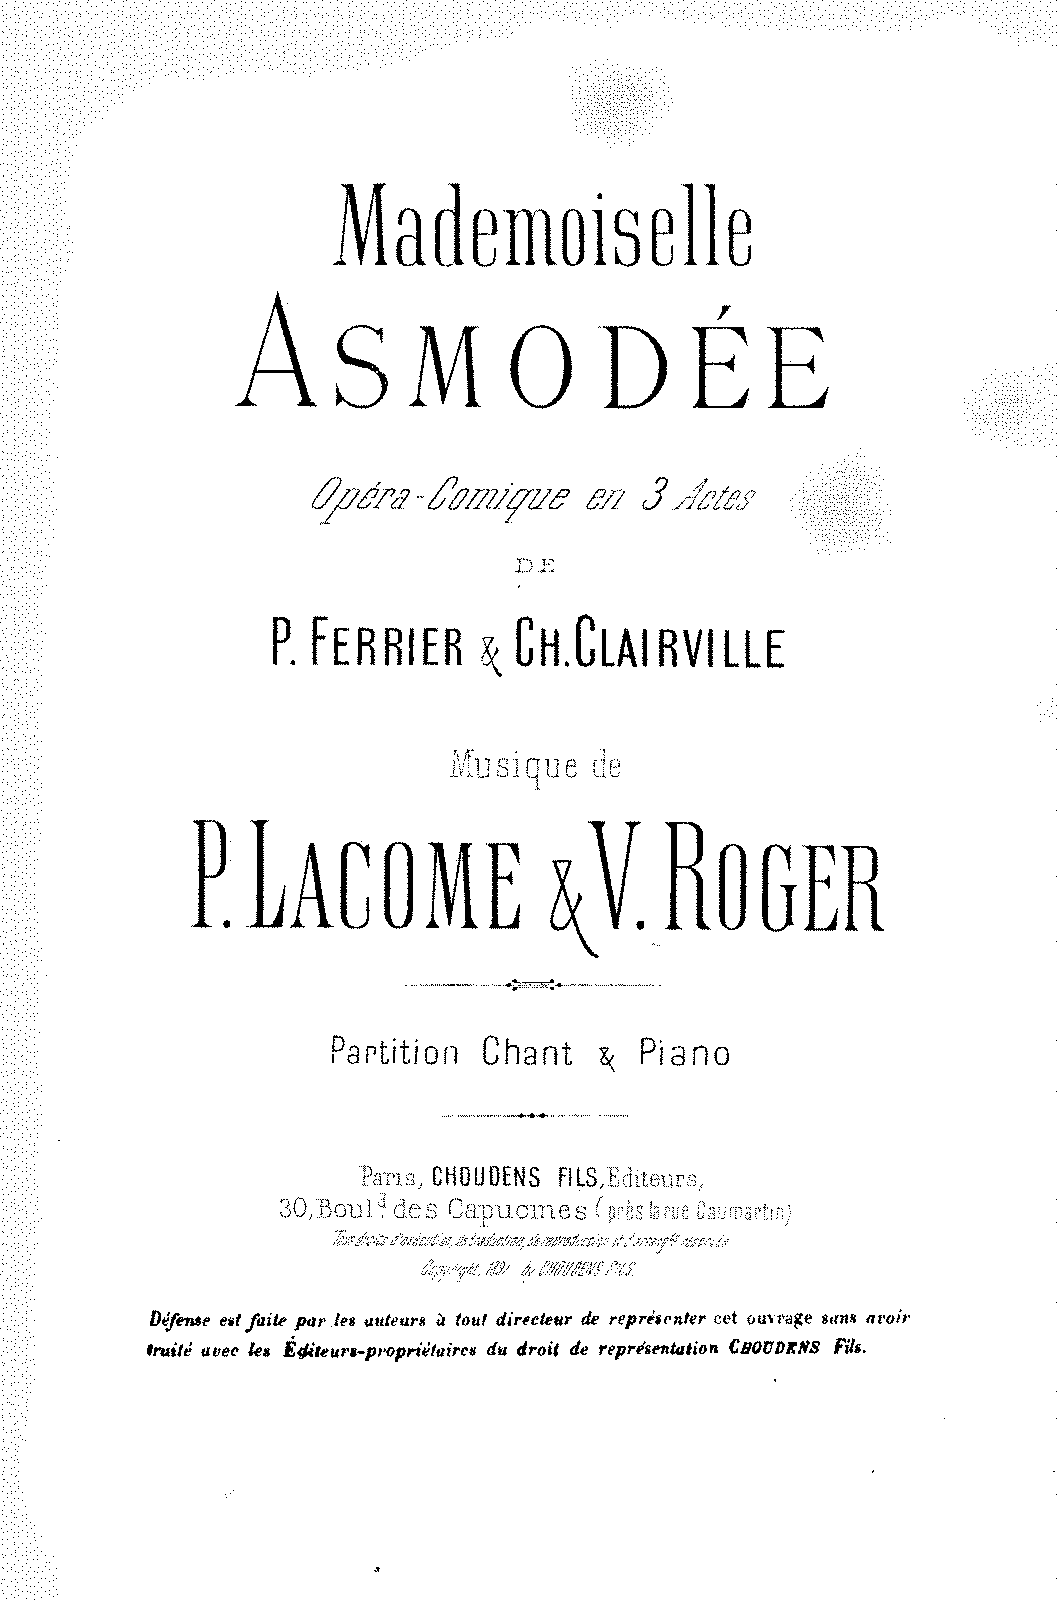 PMLP209535-Lacome - Mademoiselle Asmodee VS.pdf